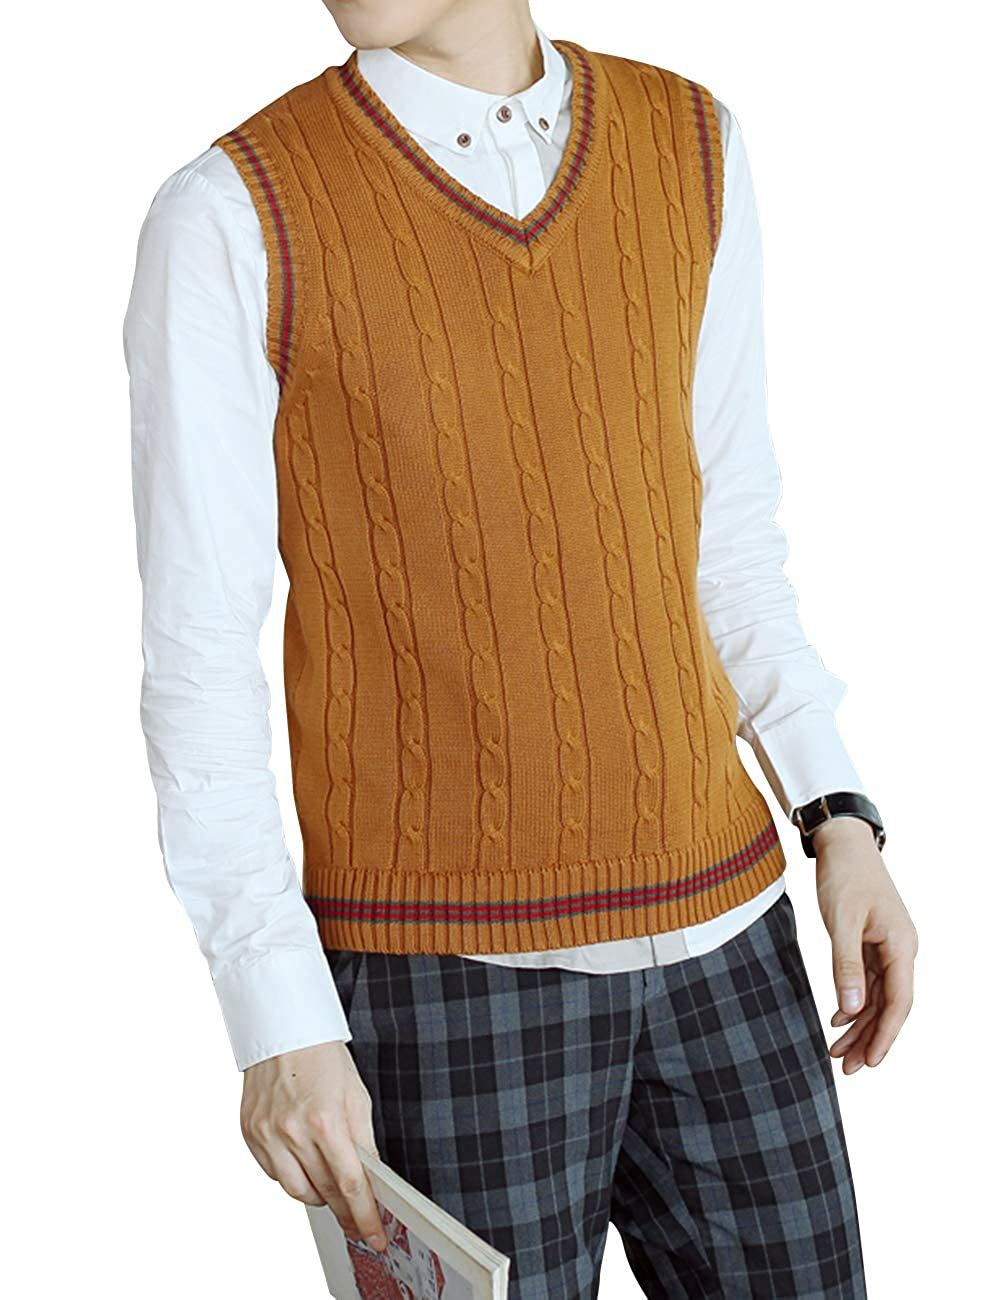 1920s Style Mens Vests TOPTIE Mens V-Neck Cotton Cable Knit Sweater Vest Slim Fit Casual Waistcoat $18.99 AT vintagedancer.com